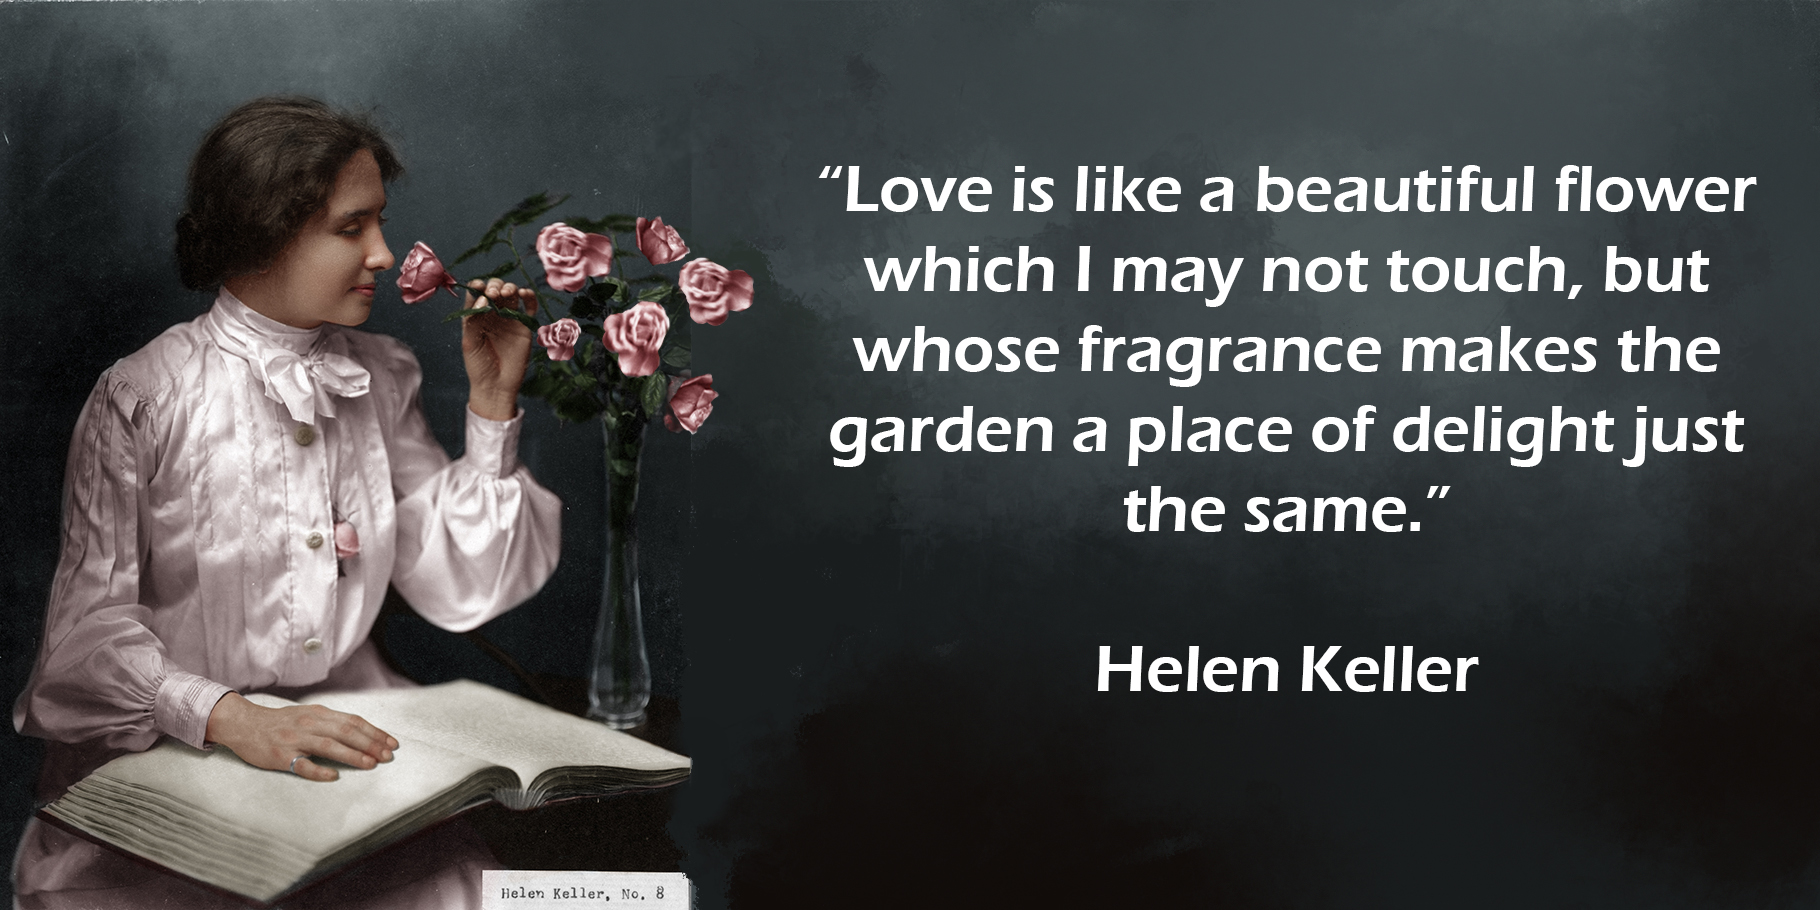 Love is like a beautiful flower which I may not touch, but whose fragrance makes the garden a place of delight just the same. Helen Keller.